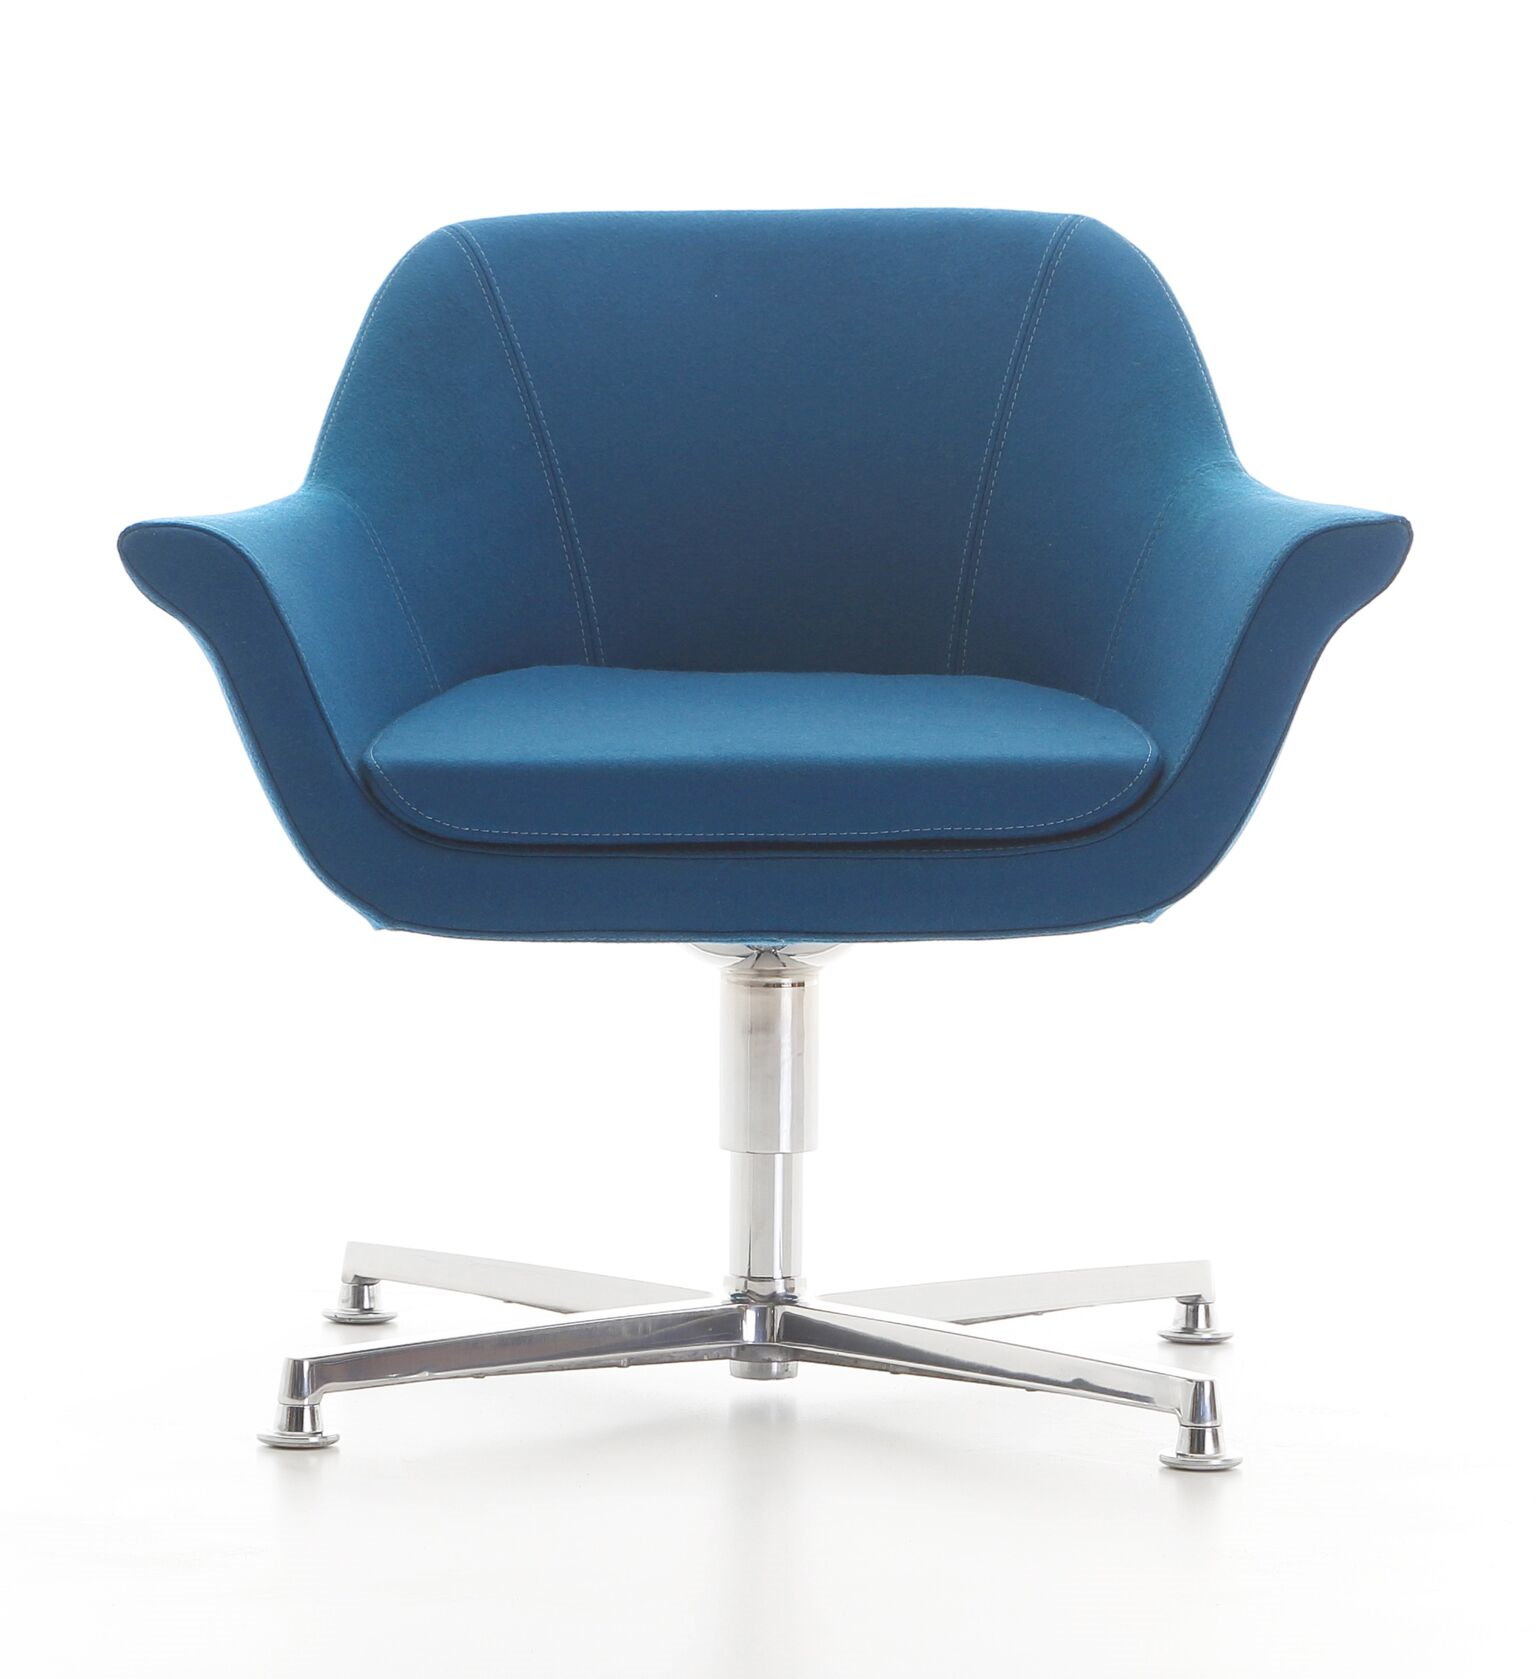 Gallery Of Duno Armchair By Catapult Design Local Australian Furniture Design Ultimo, Sydney Image 1